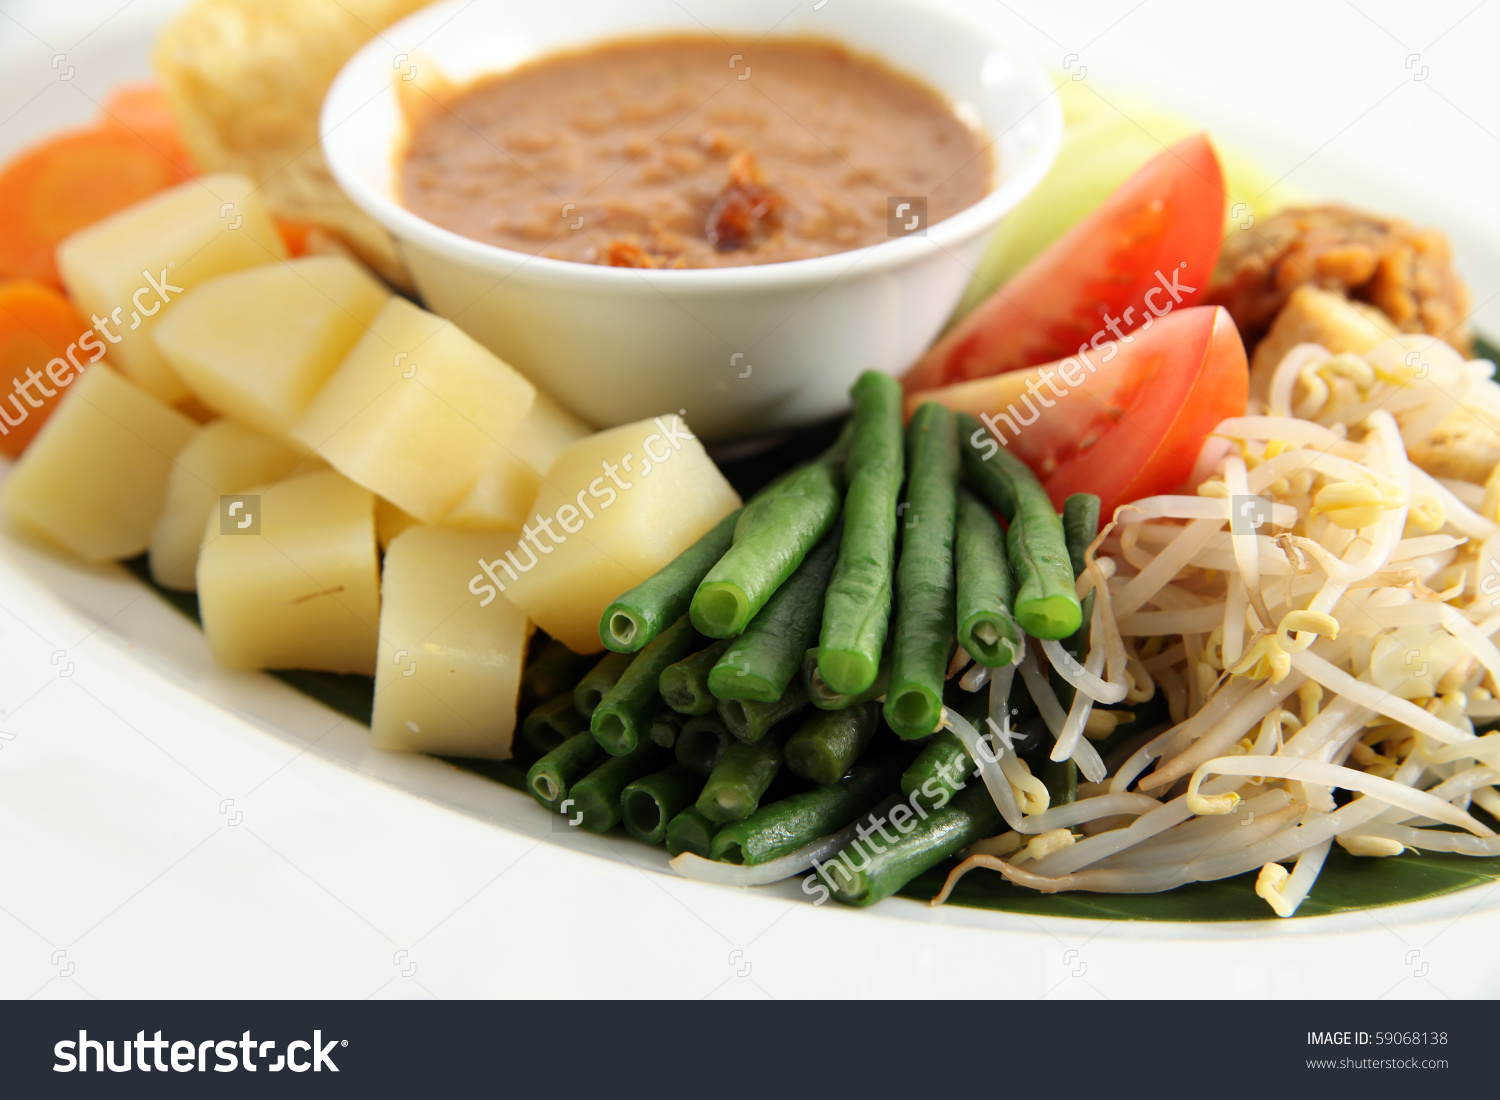 Peanut Sauce Eastern Cuisine Named Gadogado Stock Photo 59068138.